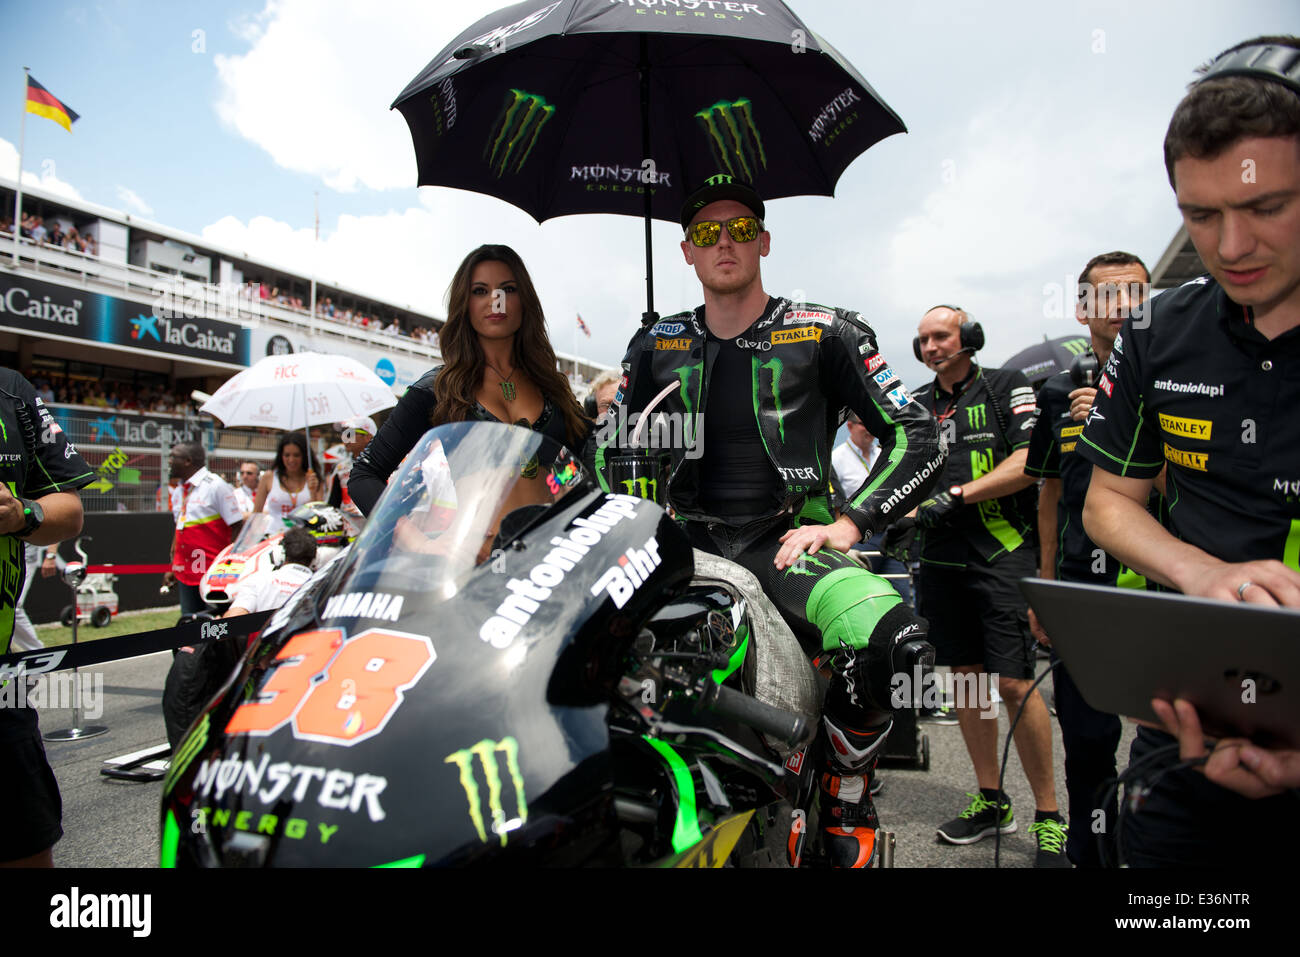 Bradley Smith on the start grid for Round 7 of the 2014 FIM MotoGP World Championship at Circuit De Catalunya. - Stock Image